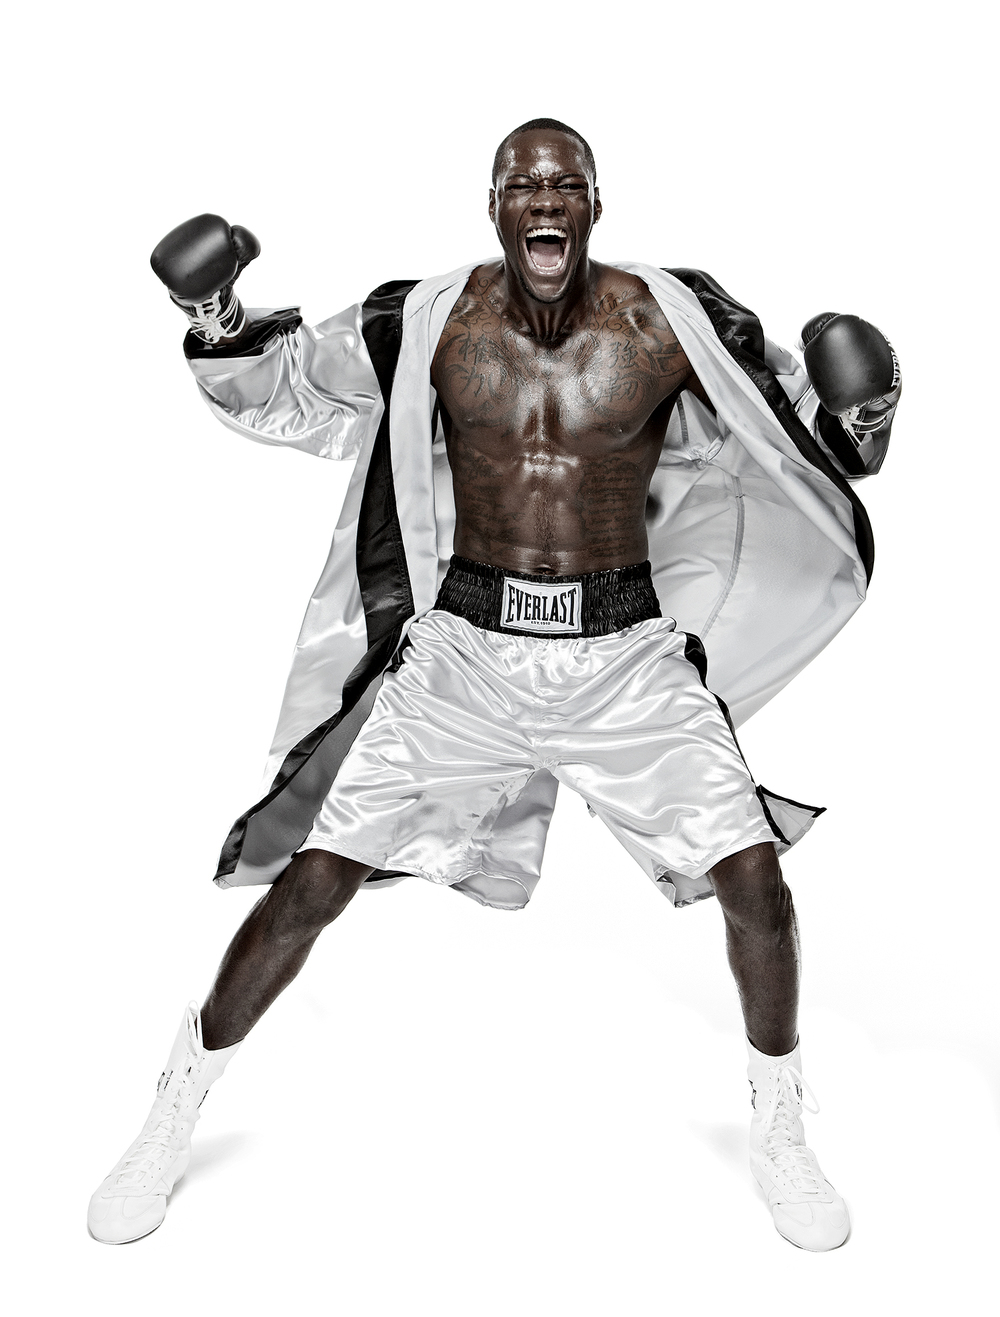 deontay wilder / everlast unleashed